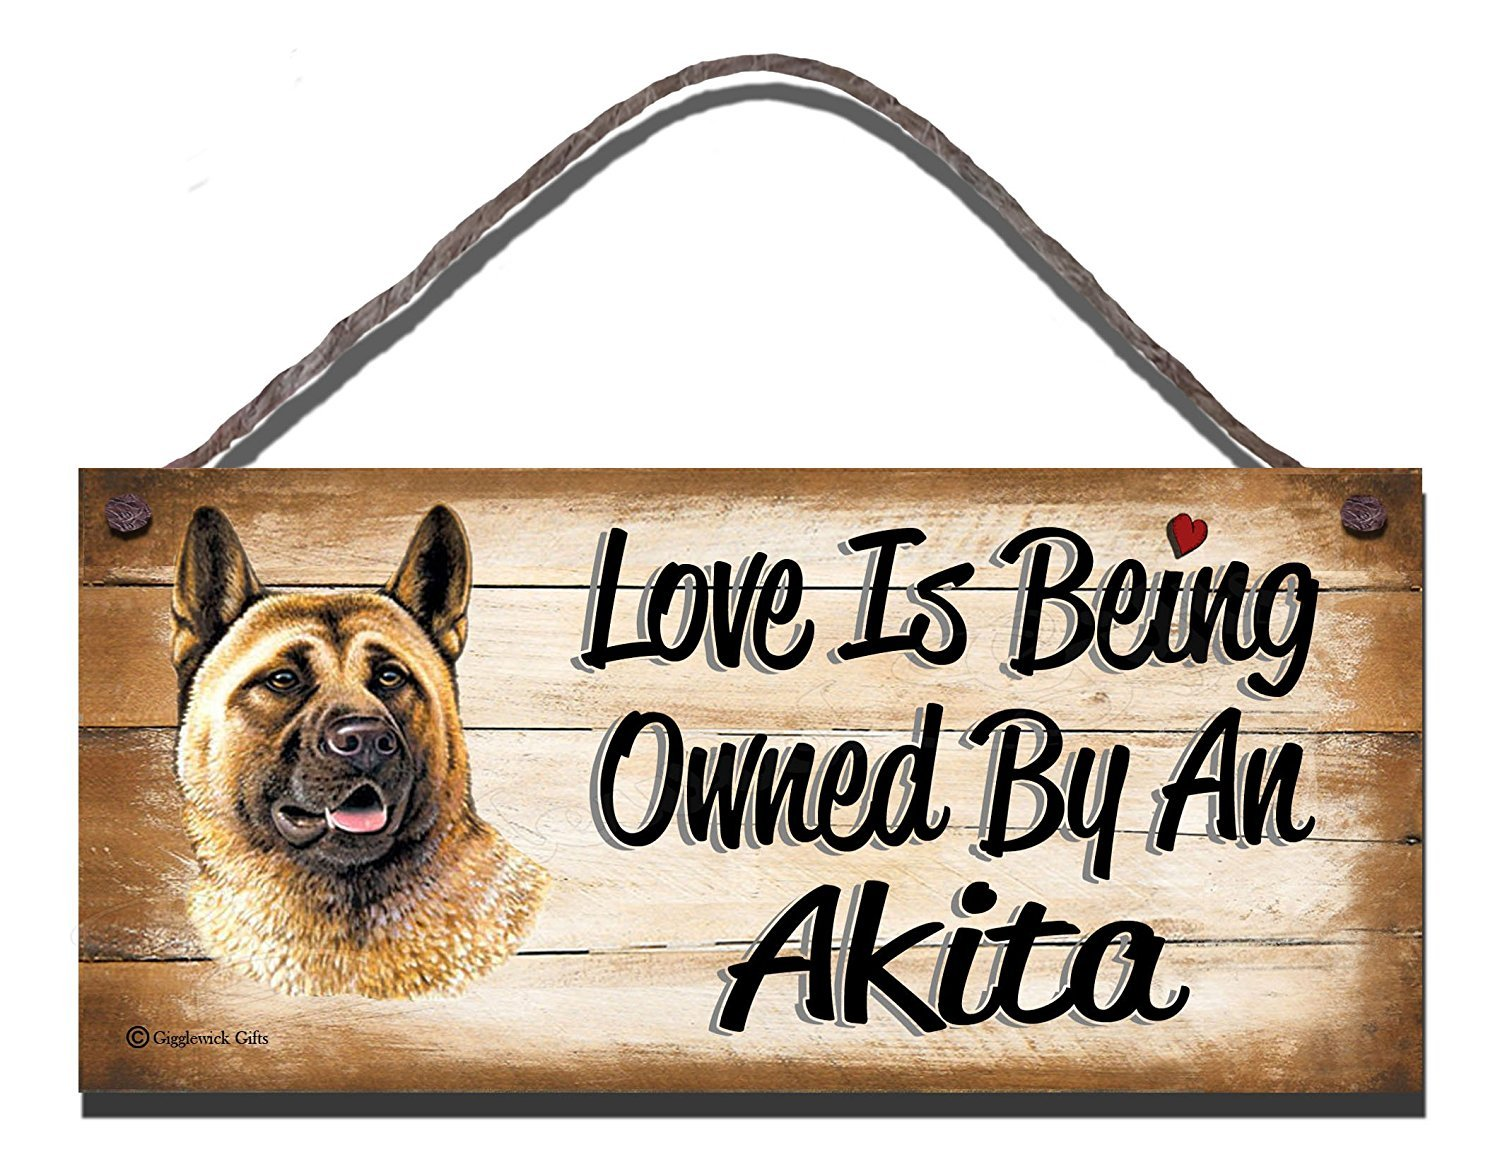 Gigglewick Gifts Akita Wooden Funny Sign Wall Plaque Gift Present Love is Being Owned by an Akita Dog 1